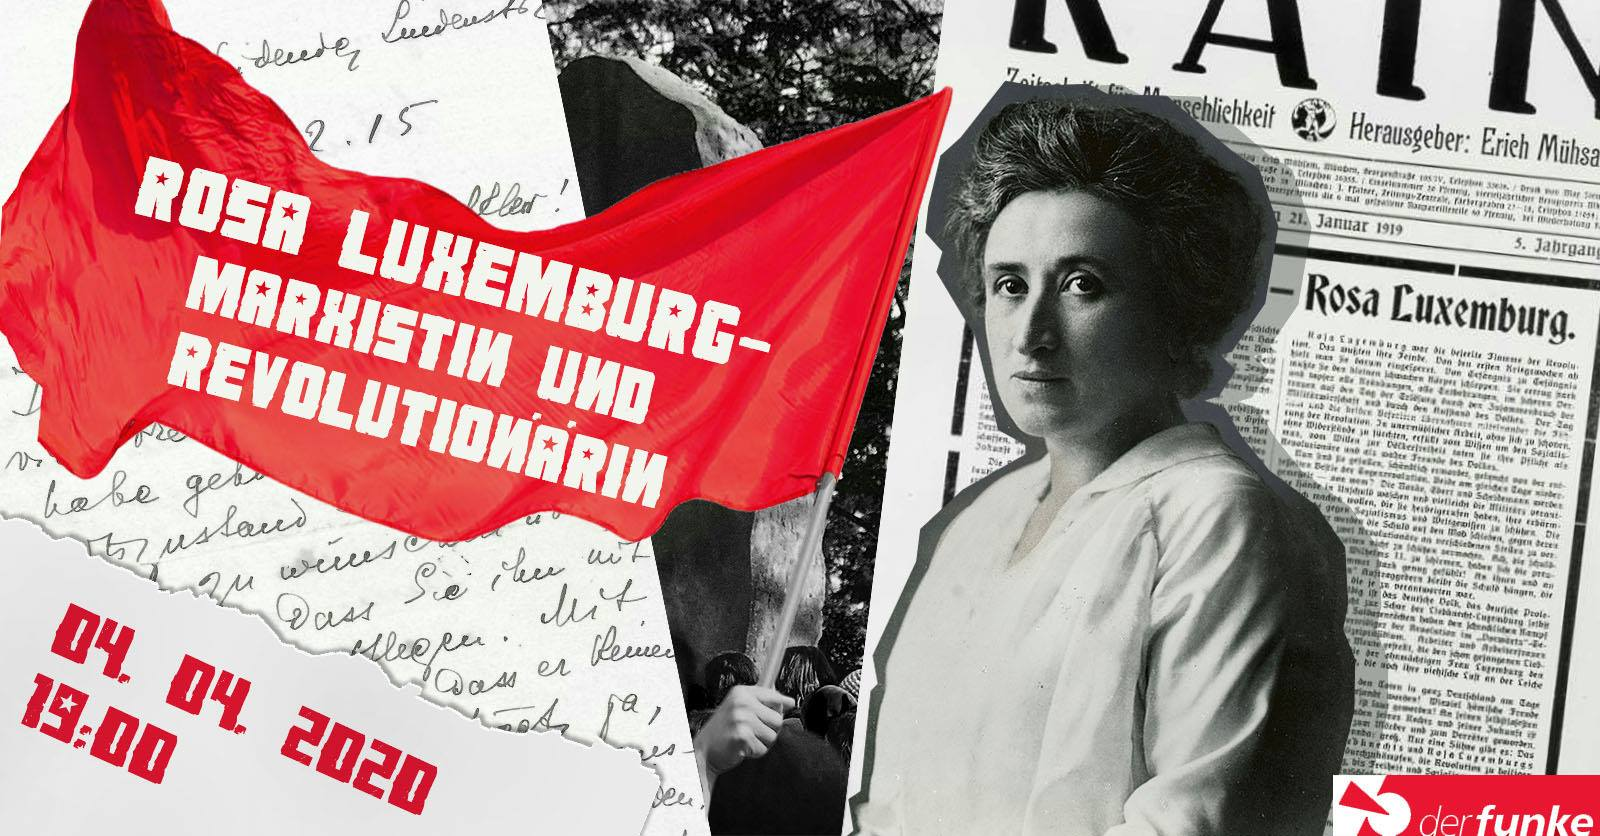 [VIDEO] Rosa Luxemburg - Marxistin und Revolutionärin